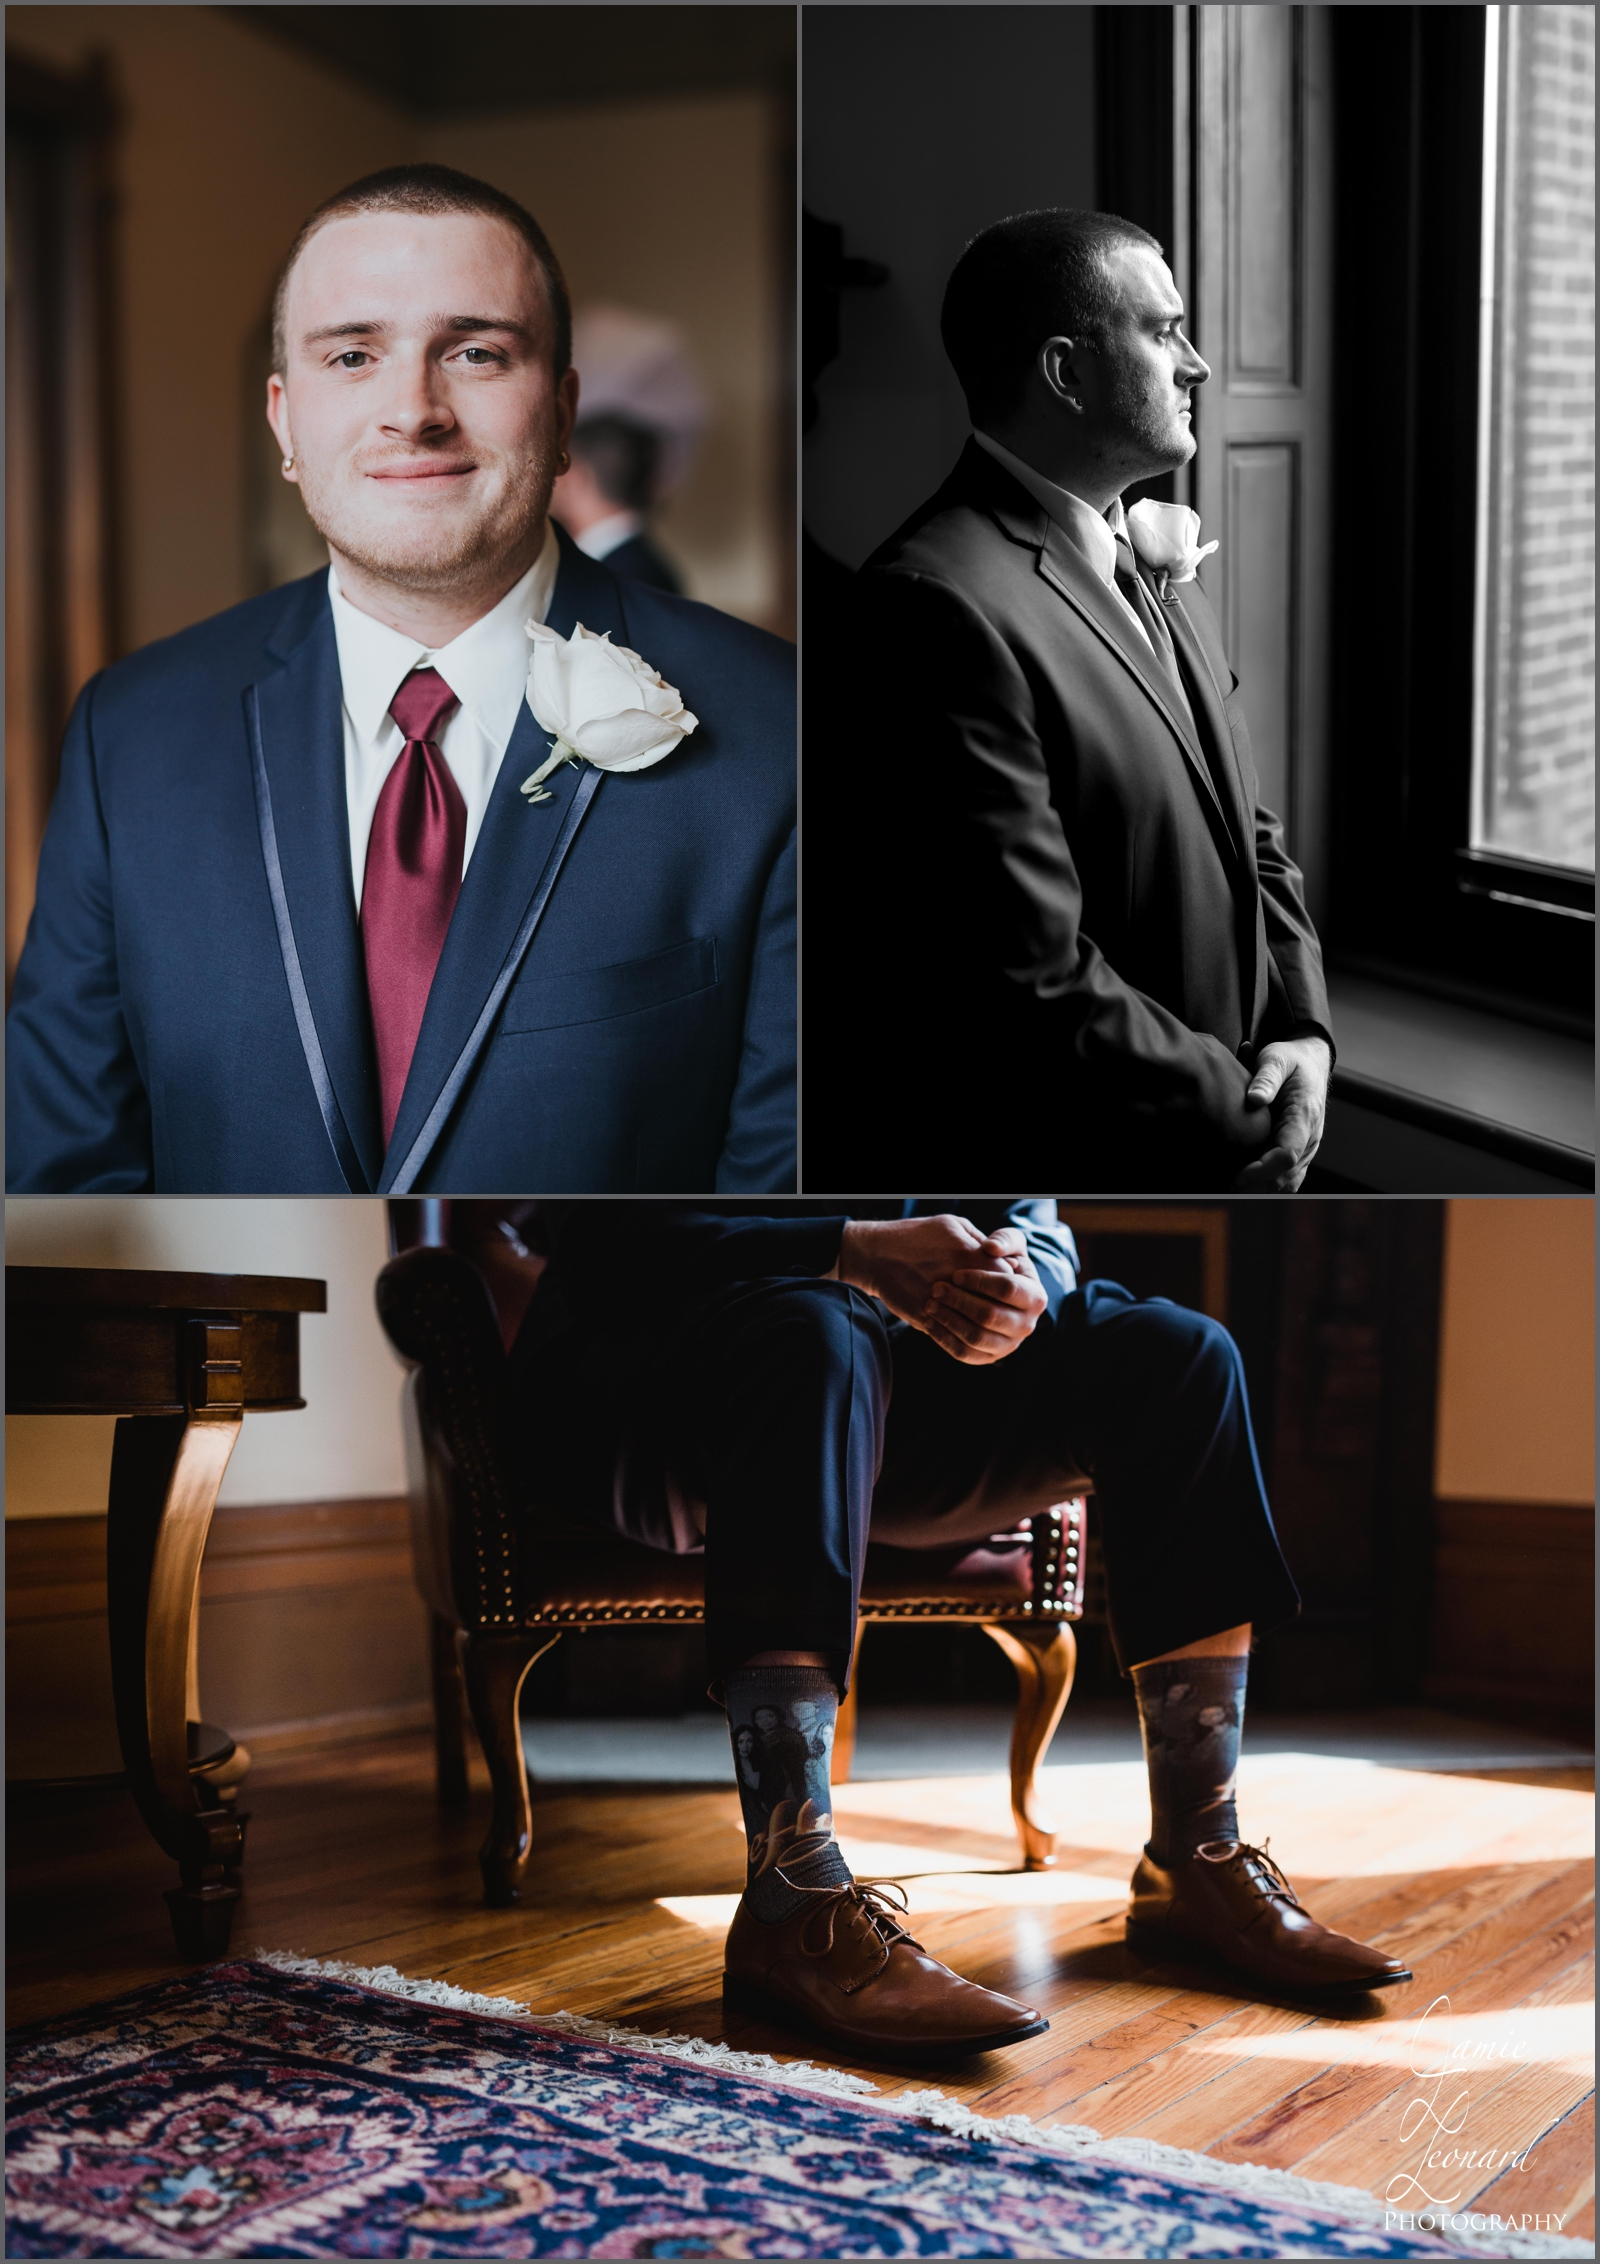 wedding_seton_hill_church_lakeview_greensburg_jamie_leonard_photography_photographer_engagement_bride_groom.jpg